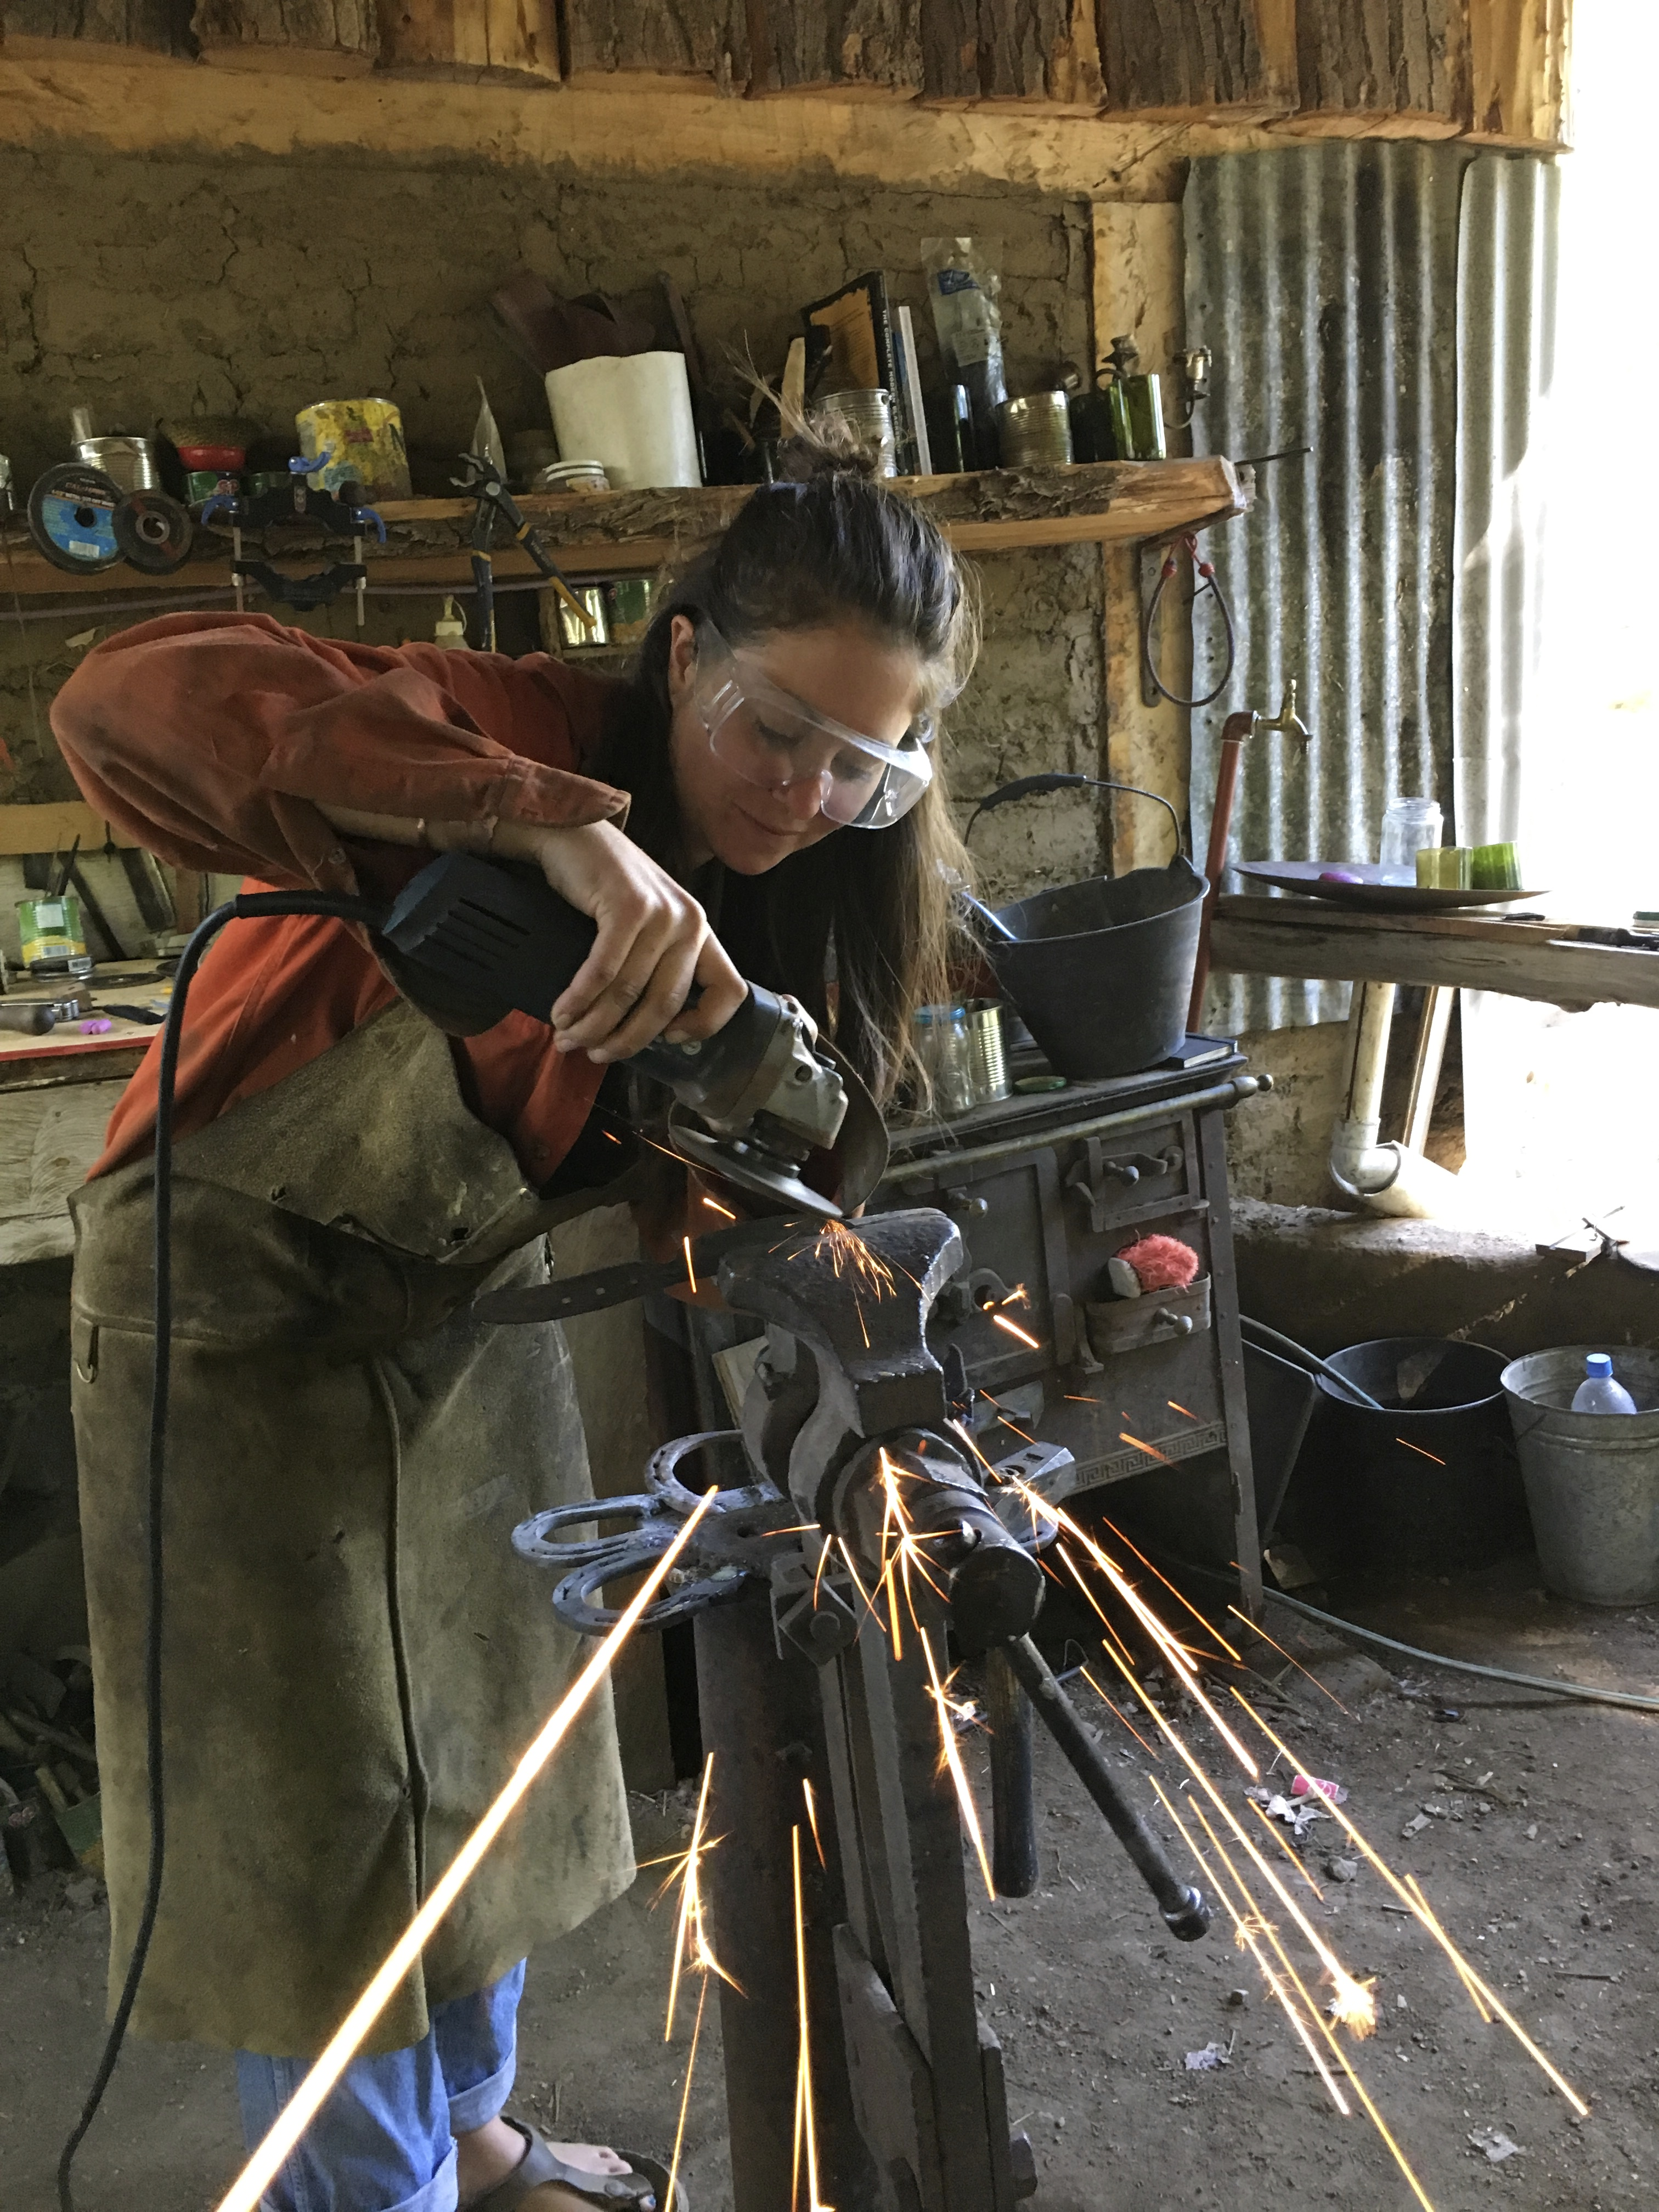 Hand forging a knife at the ranch Estancia Ranquilco in Patagonia Argentina